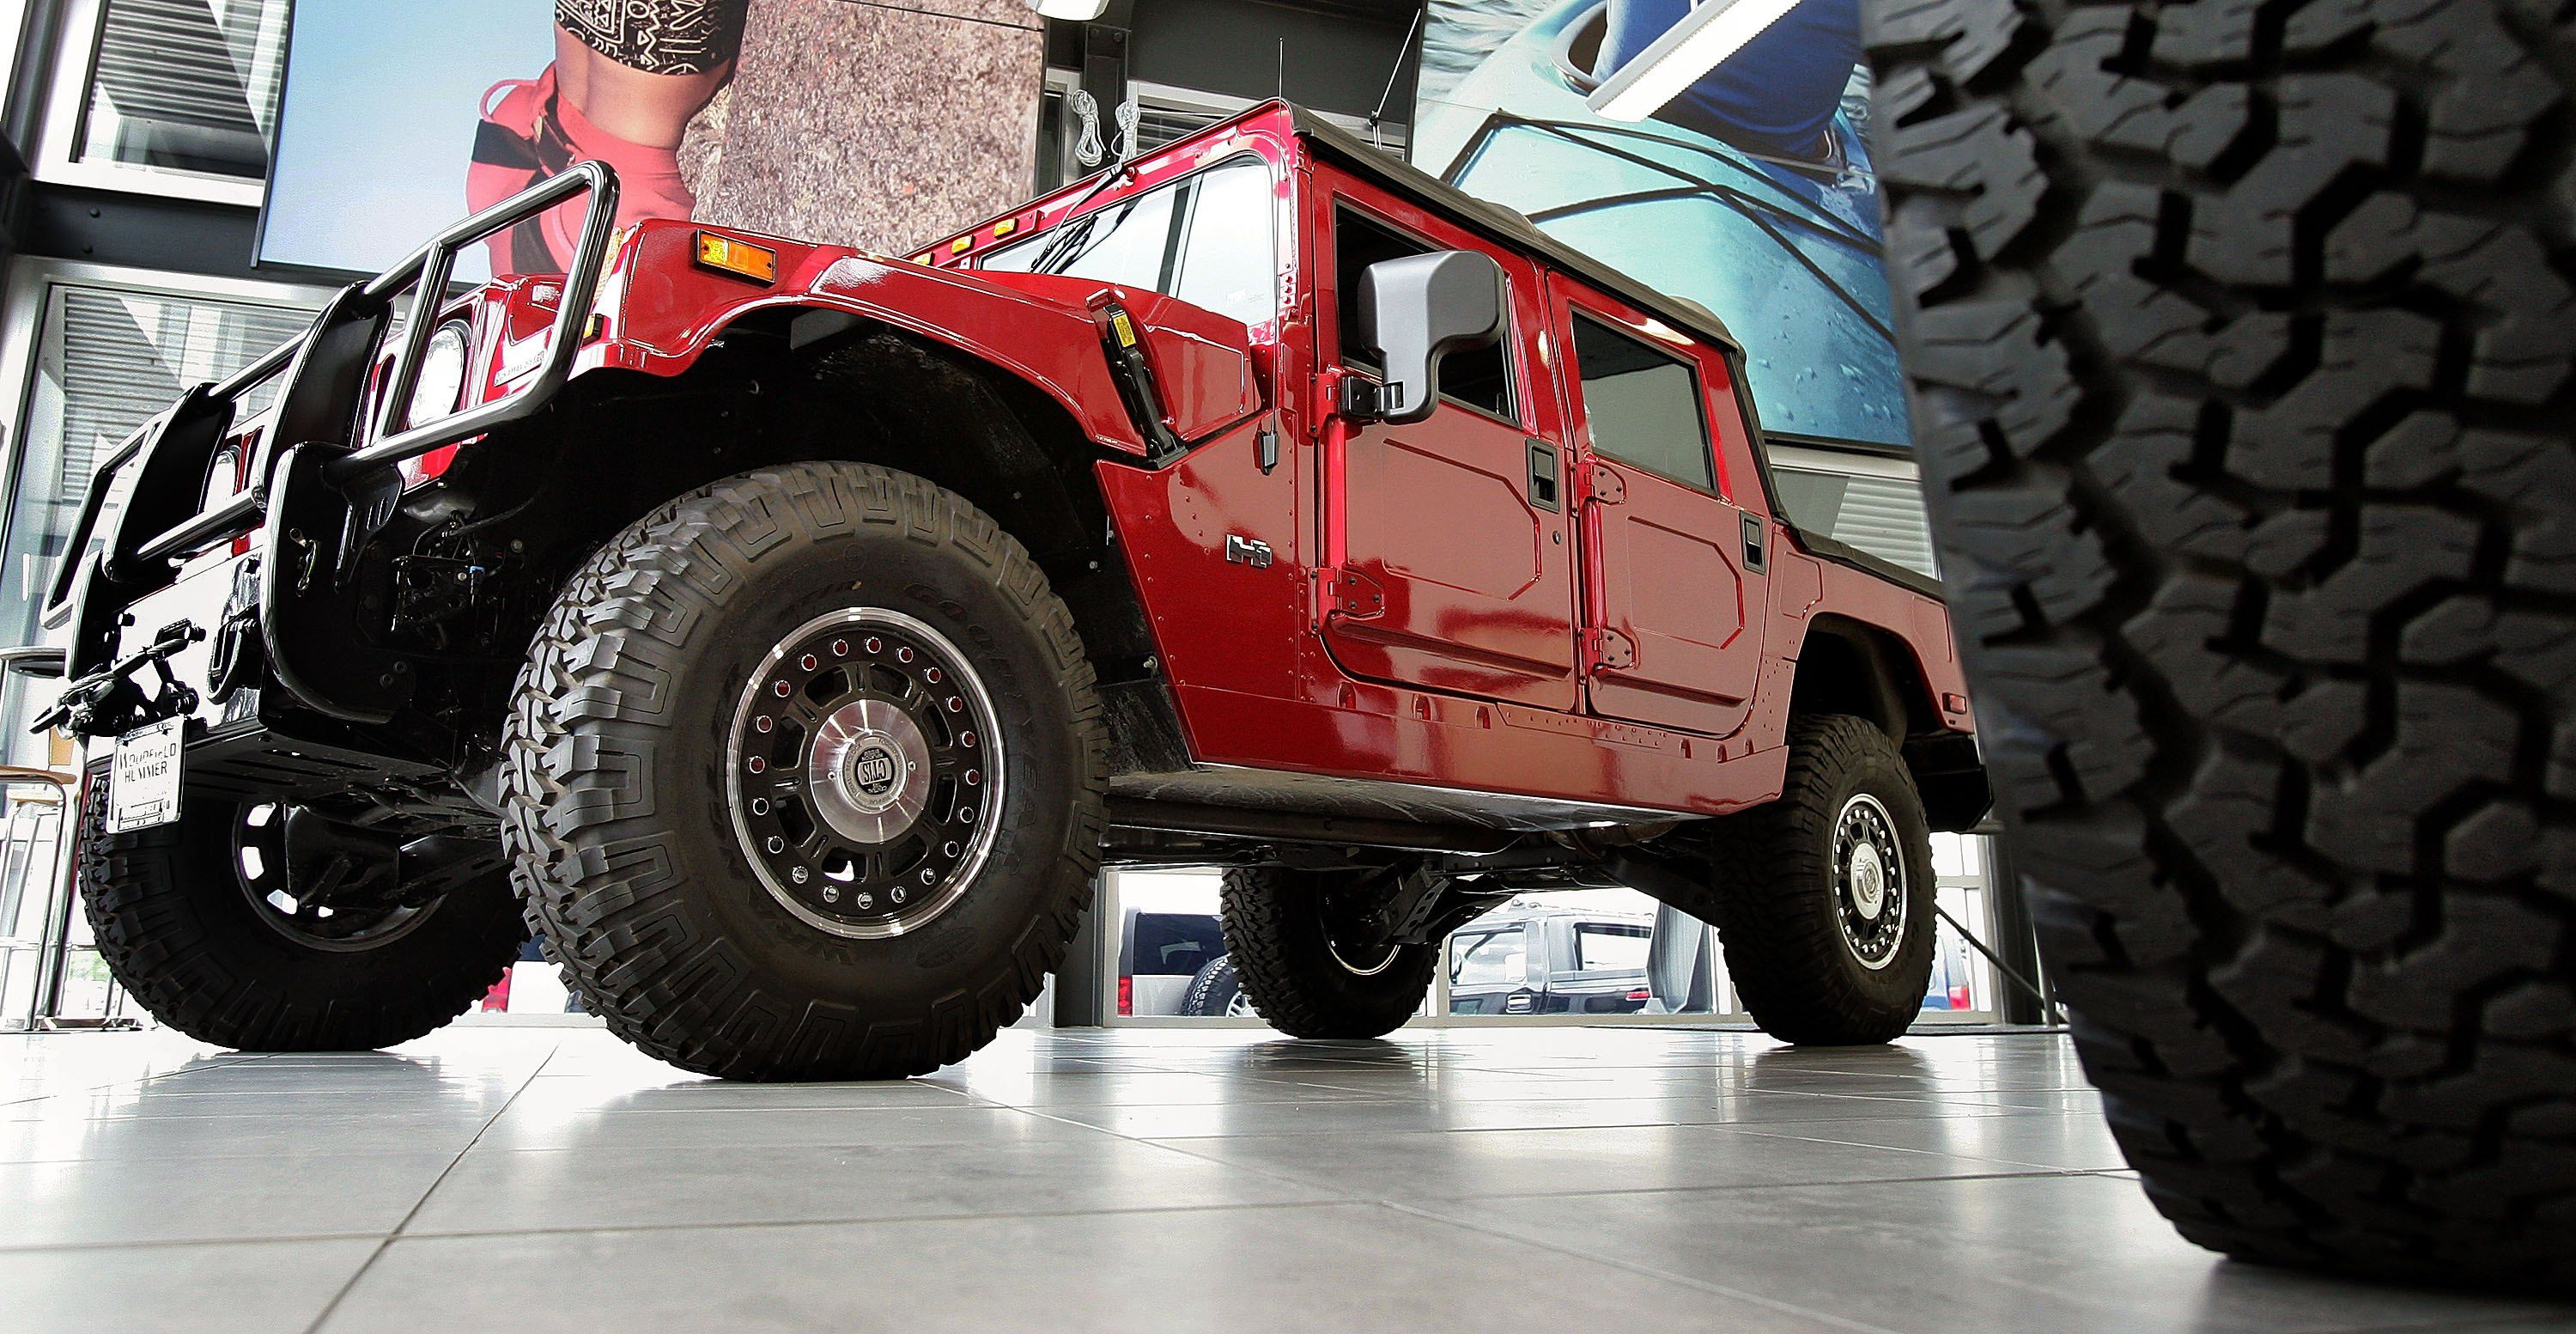 Features That Make Hummer Vehicles Special